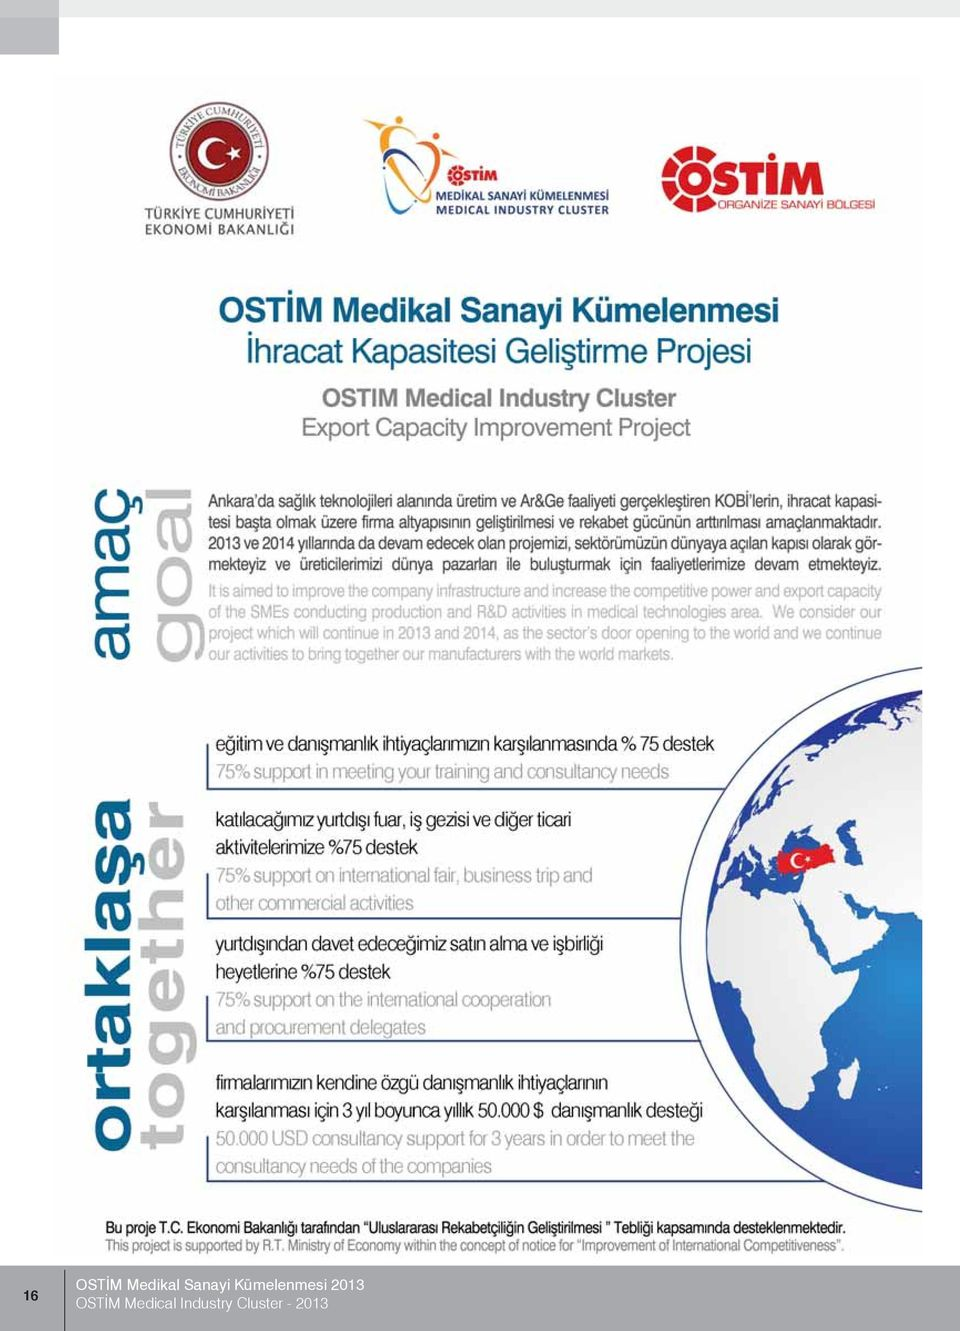 2013 OSTİM Medical